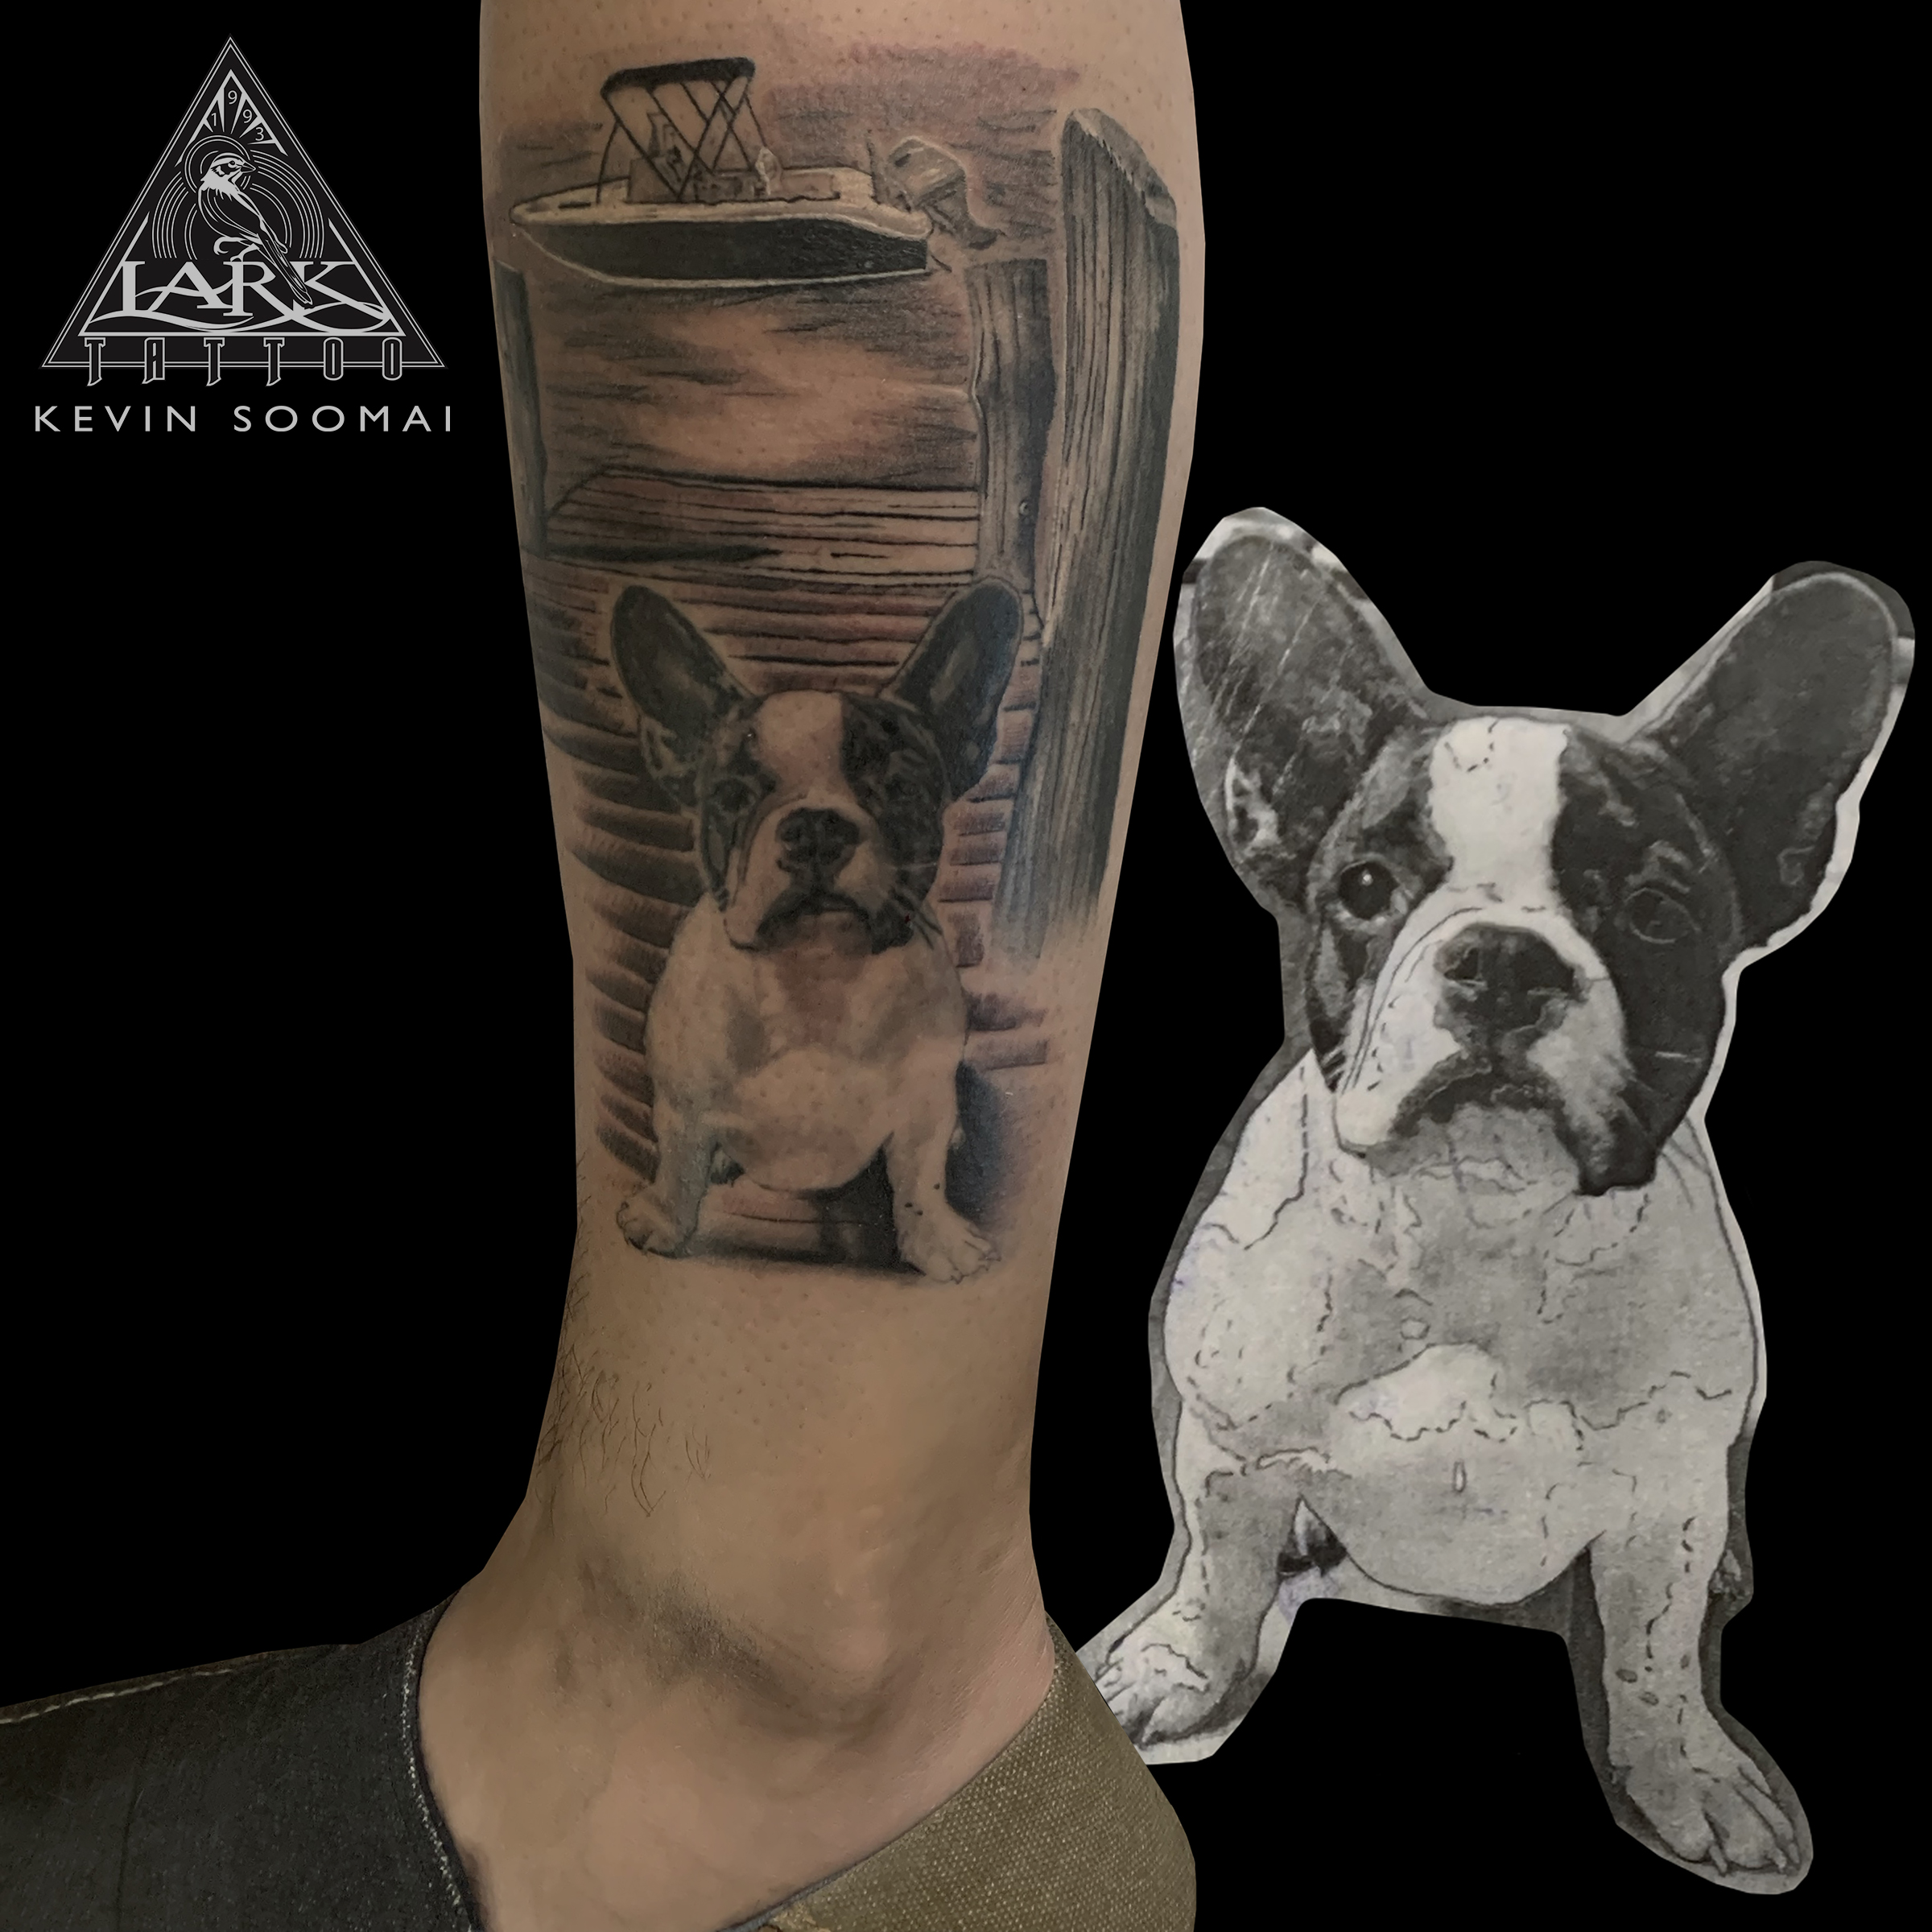 #LarkTattoo #Tattoo #Tattoos #TattooArtist #Tattoist #Tattooer #LongIslandTattooArtist #LongIslandTattooer #LongIslandTattoo #Dog #FrenchBulldog #FrenchBulldogTattoo #Petstagram #DogPortrait #DogPortraitTattoo #DogTattoo #Pet #PetTattoo #Animal #AnimalTattoo #PetPortrait #PetPortraitTattoo #Portrait #PortraitTattoo #AnimalLover #AnimalLoverTattoo #AnimalLovers #AnimalLoversTattoo #DogLover #DogLoverTattoo #DogLovers #DogLoversTattoo #BNG #BNGTattoo #BNGInkSociety #Realism #RealismTattoo #Realistic #RealisticTattoo #TattooOfTheDay #Tat #Tats #Tatts #Tatted #Inked #Ink #TattooInk #AmazingInk #AmazingTattoo #BodyArt #LarkTattooWestbury #Westbury #LongIsland #NY #NewYork #USA #Art #Tattedup #InkedUp #LarkTattoos